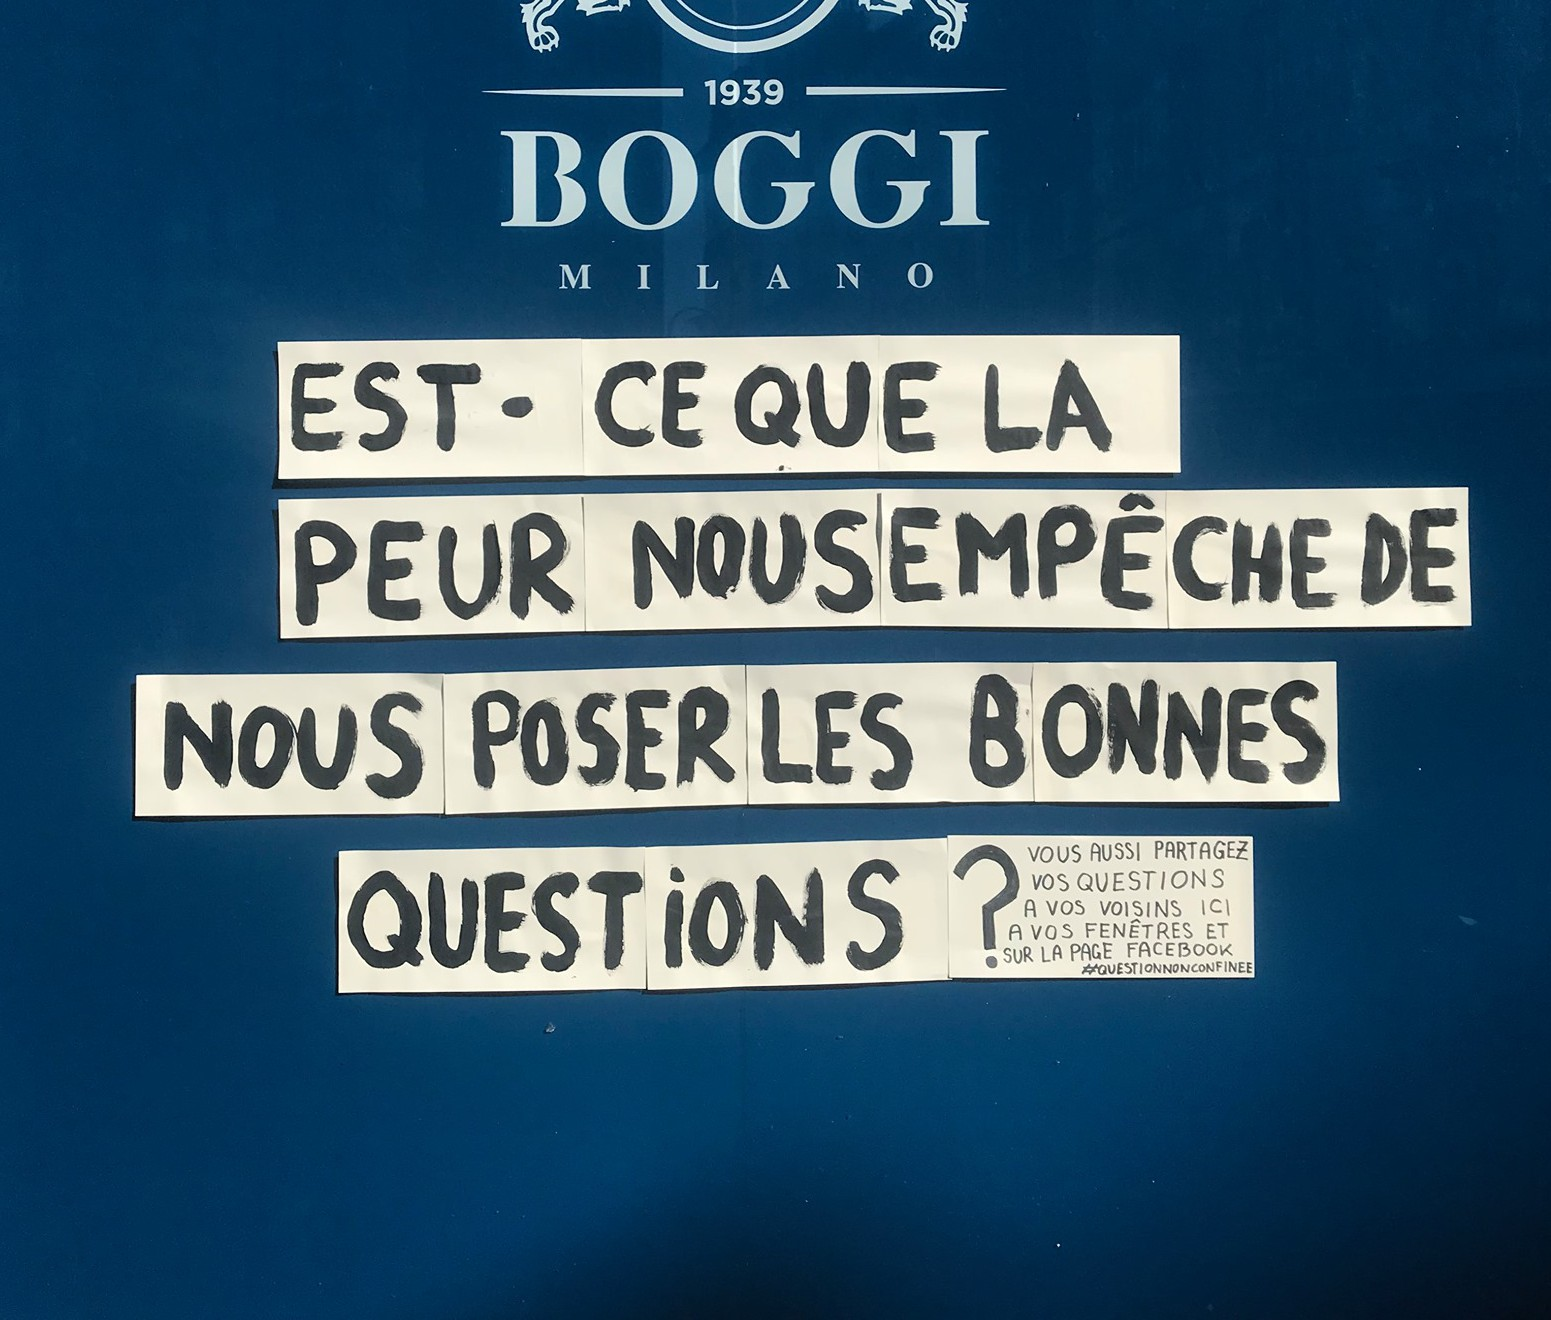 question non confinée